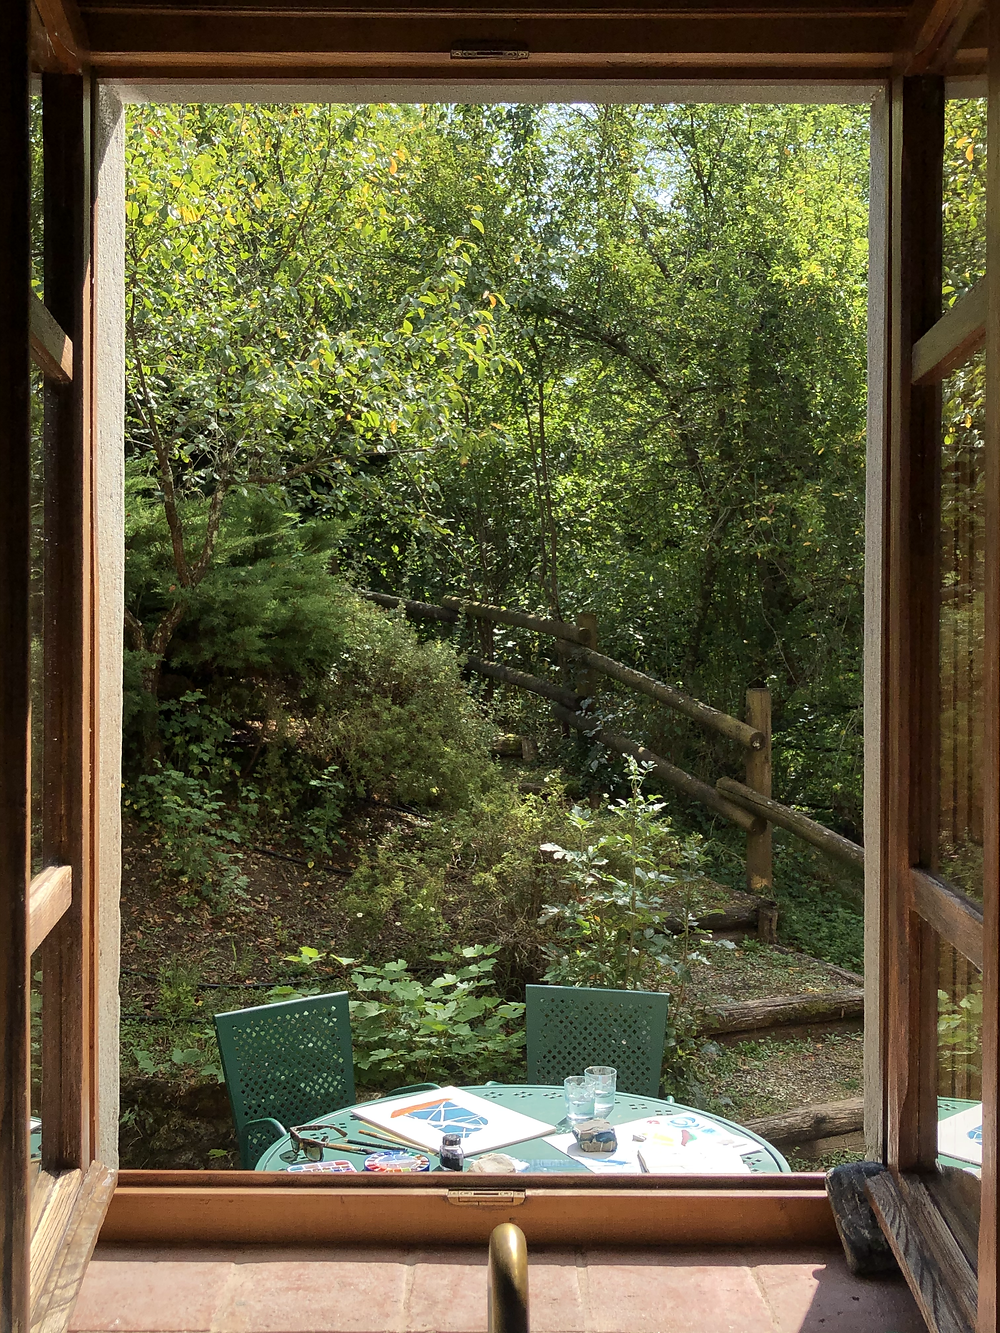 View of a window showing a a green metal table outside on the countryside